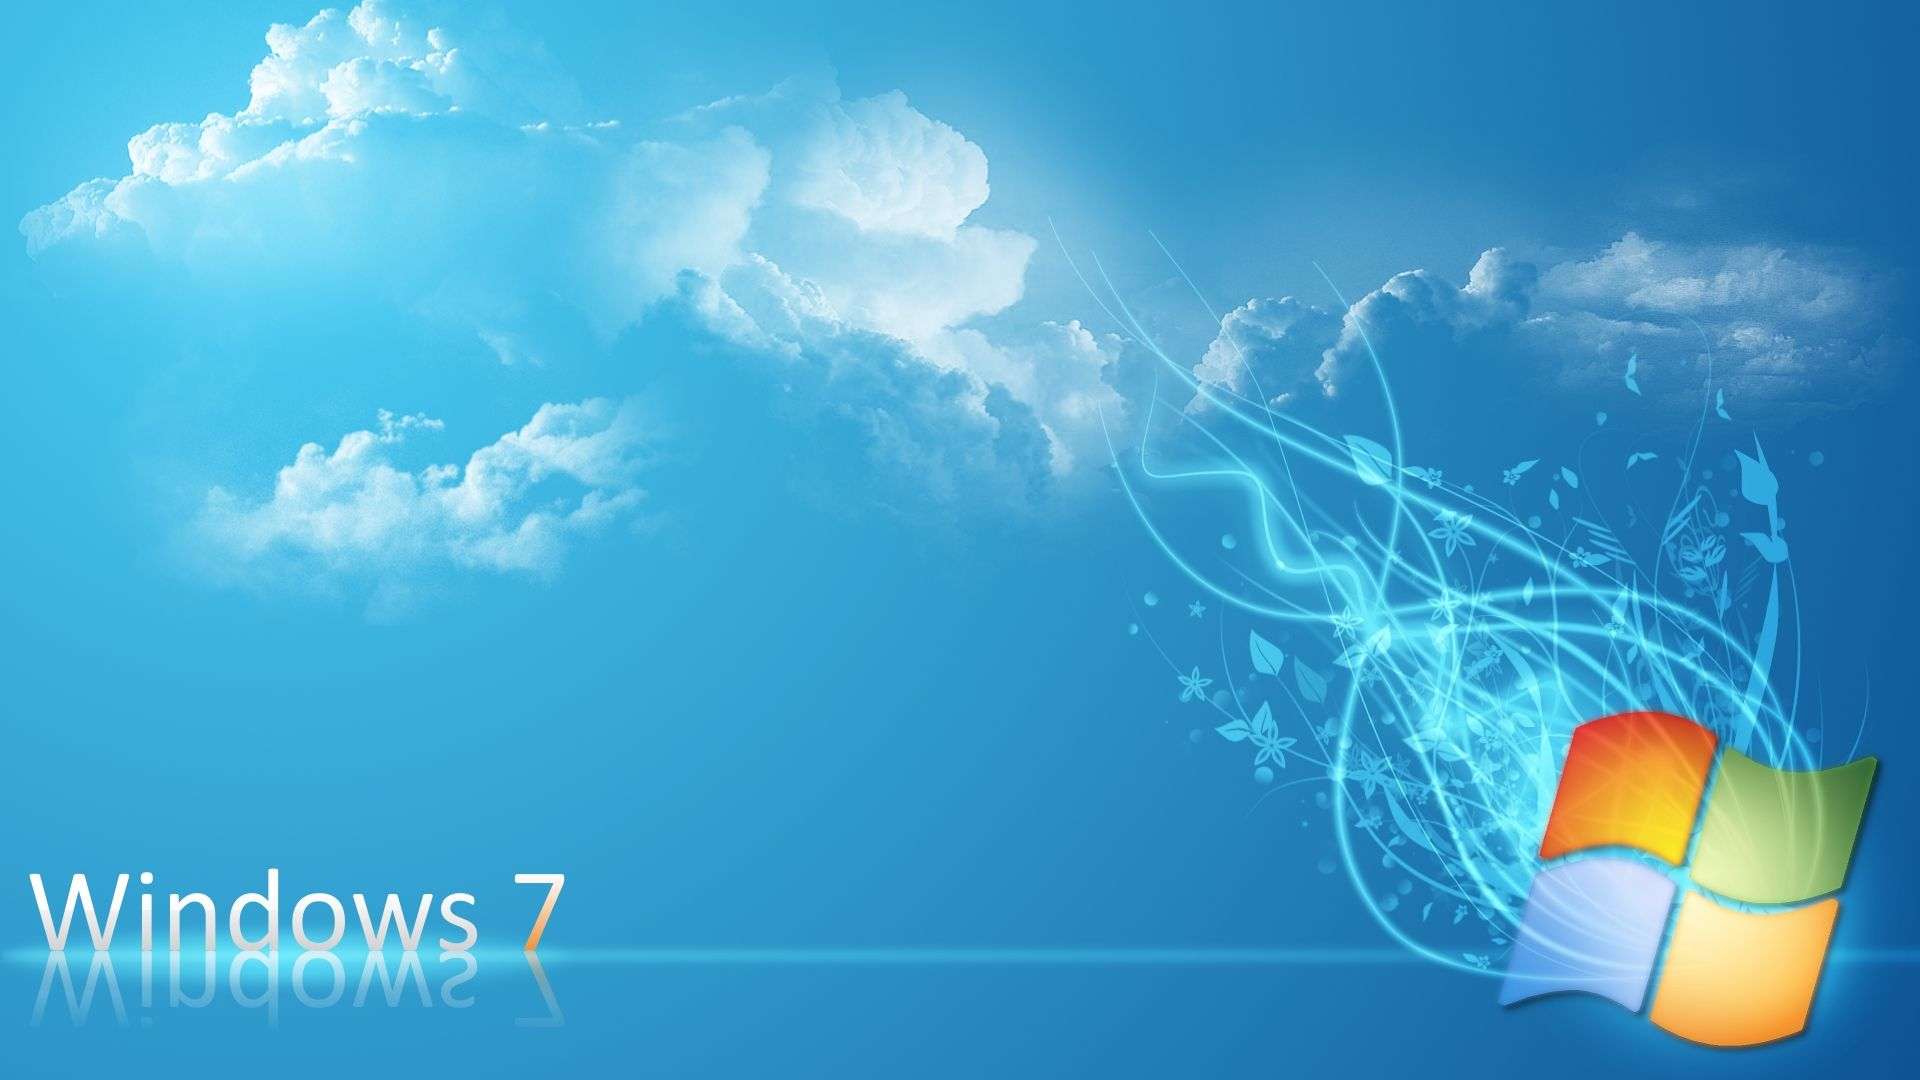 Windows 7 Professional Desktop Wallpapers Top Free Windows 7